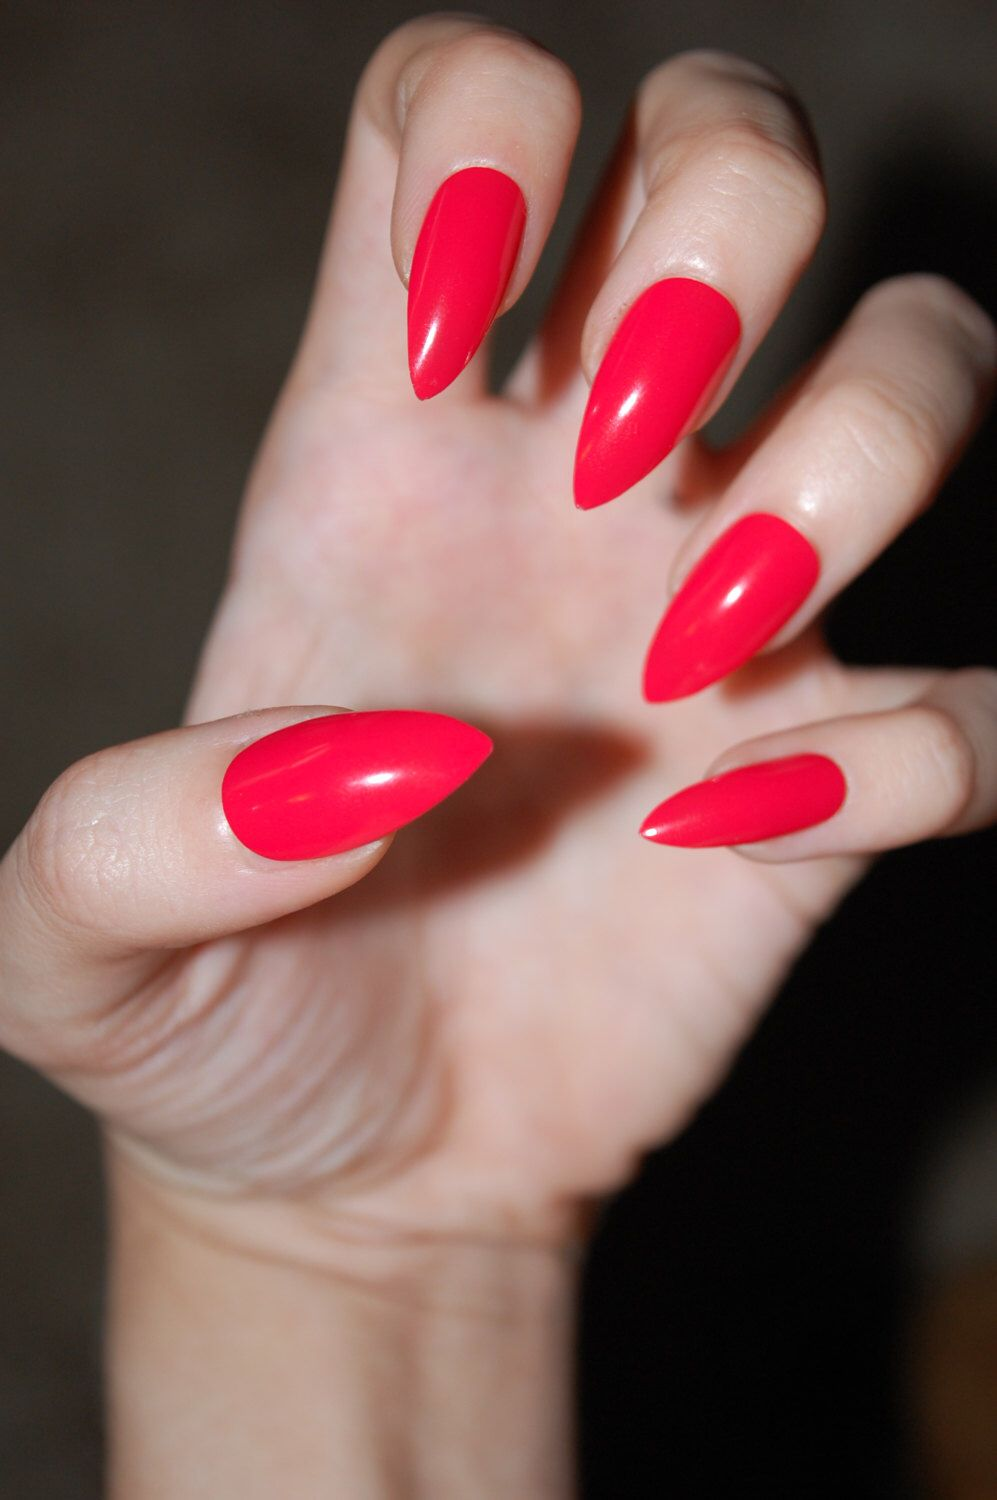 Bright Red-Orange Coral Full Cover Stiletto Nails *Set of 20* [Matte or Glossy] Neon nails,Fake nails,False nails,Dope nails,Stiletto nails by PicturePlurfect on Etsy https://www.etsy.com/listing/245005134/bright-red-orange-coral-full-cover